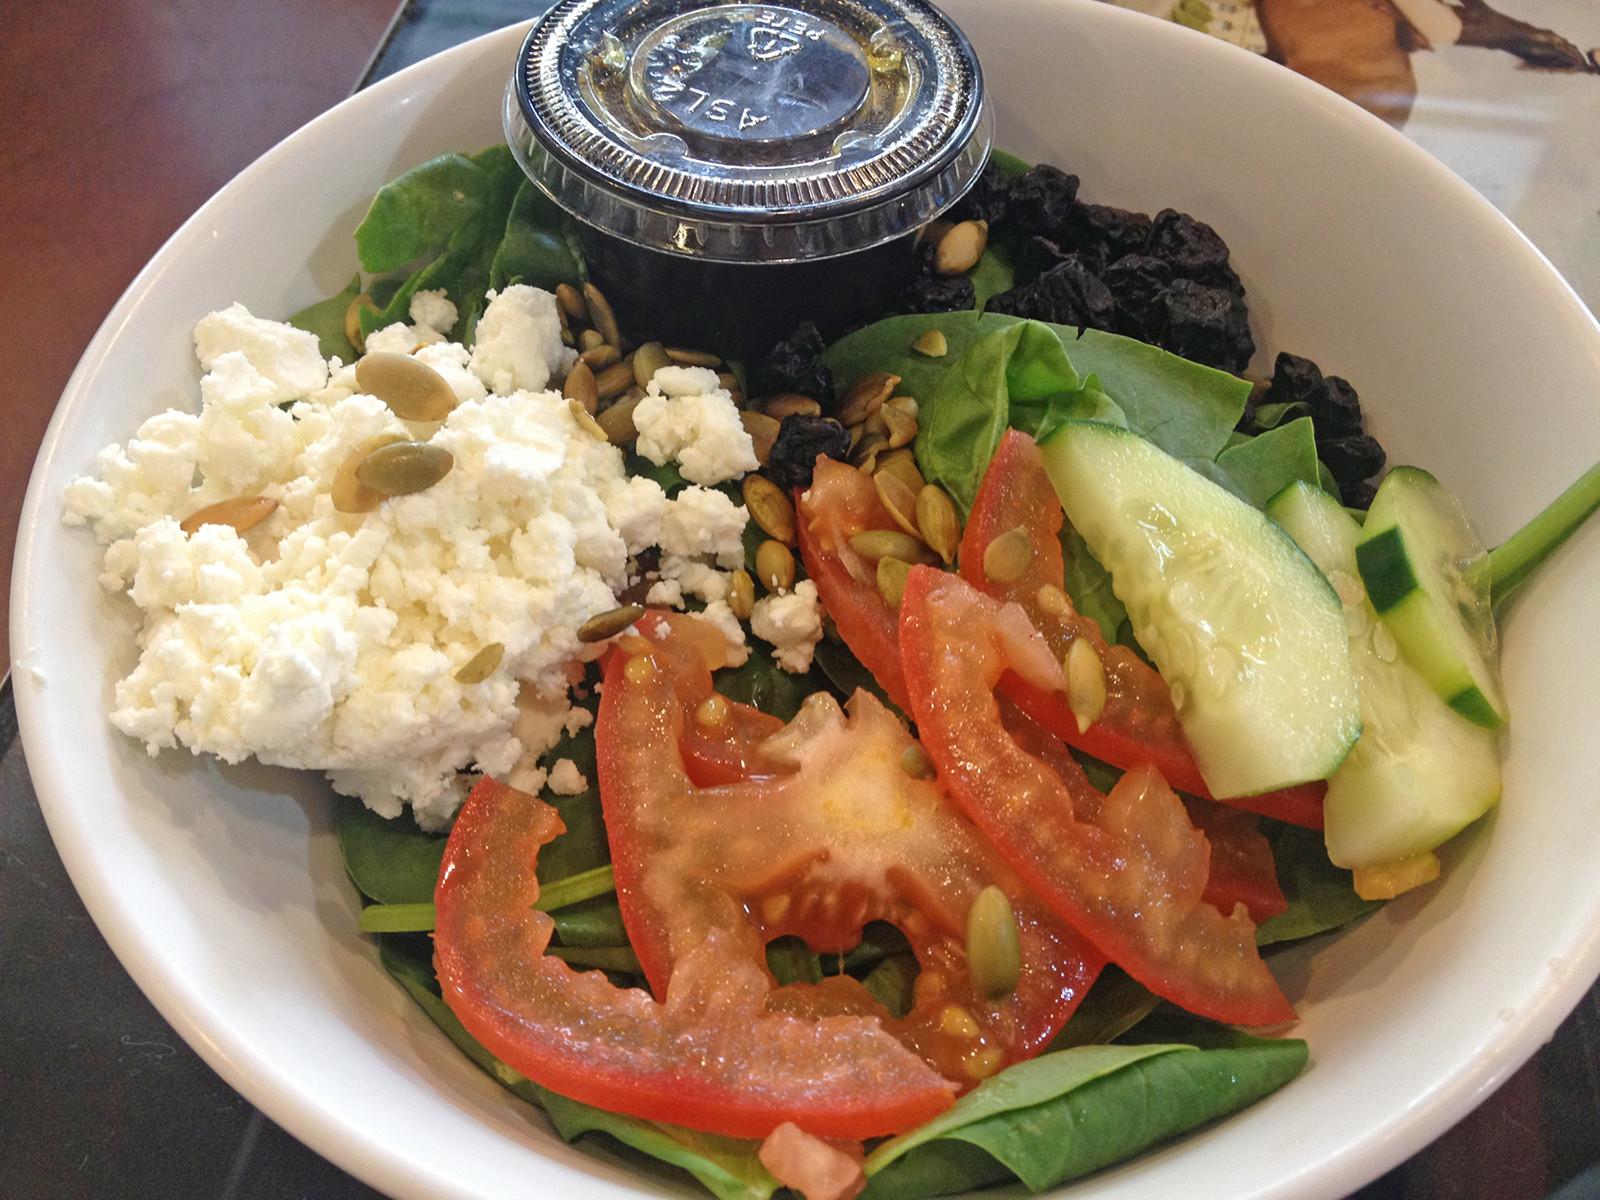 The goat cheese half-salad is fresh spinach topped with creamy goat cheese, dried sweet blueberries, crunchy pepitas (raw pumpkin seeds), tomatoes and cucumbers, and accompanied by balsamic vinaigrette.